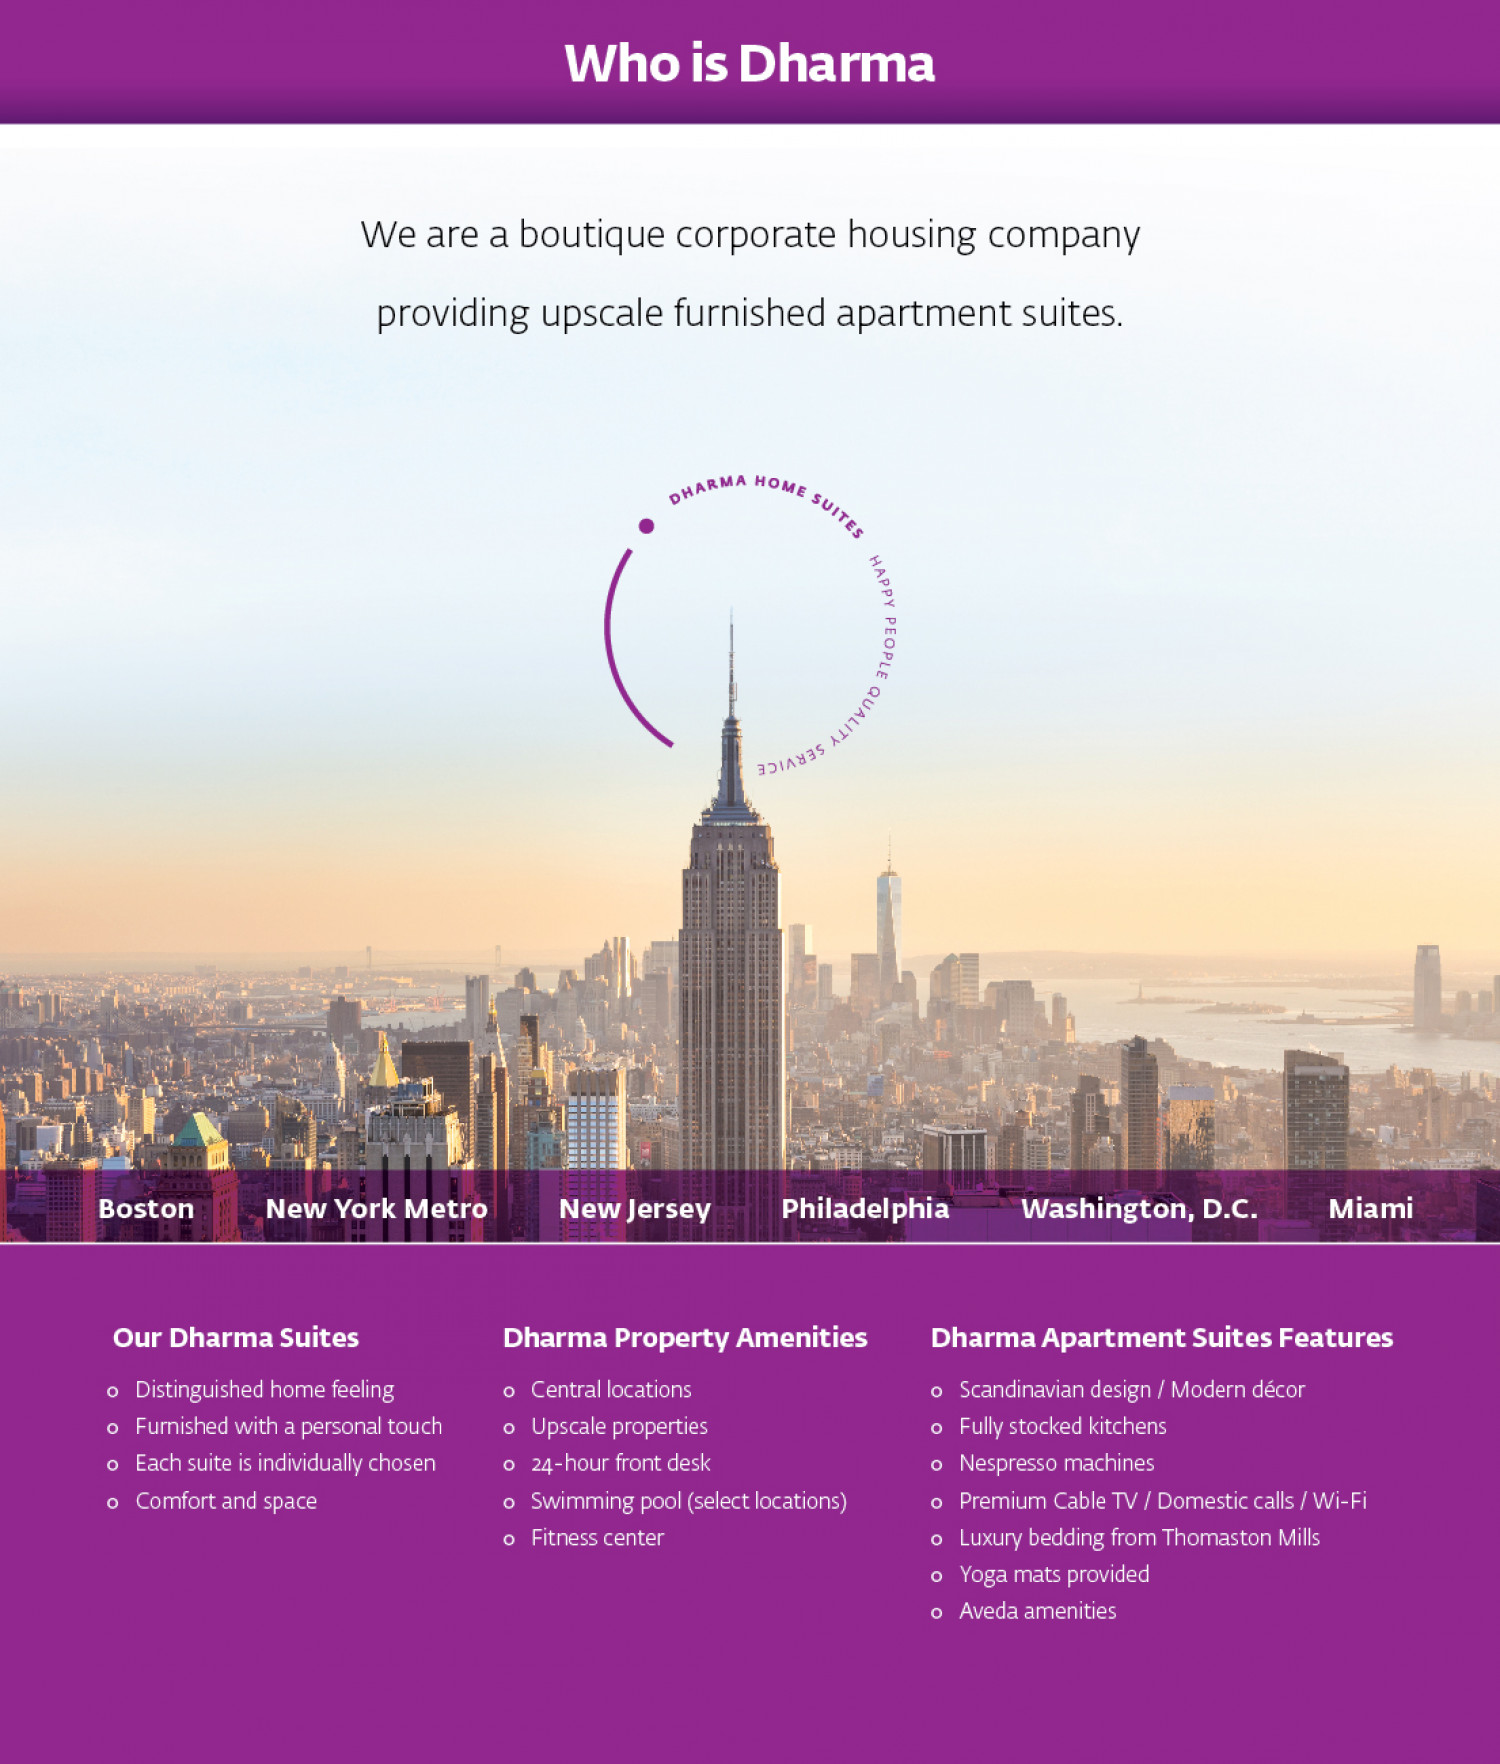 Who Is Dharma? and Features of Dharma Home Suites Apartments Infographic